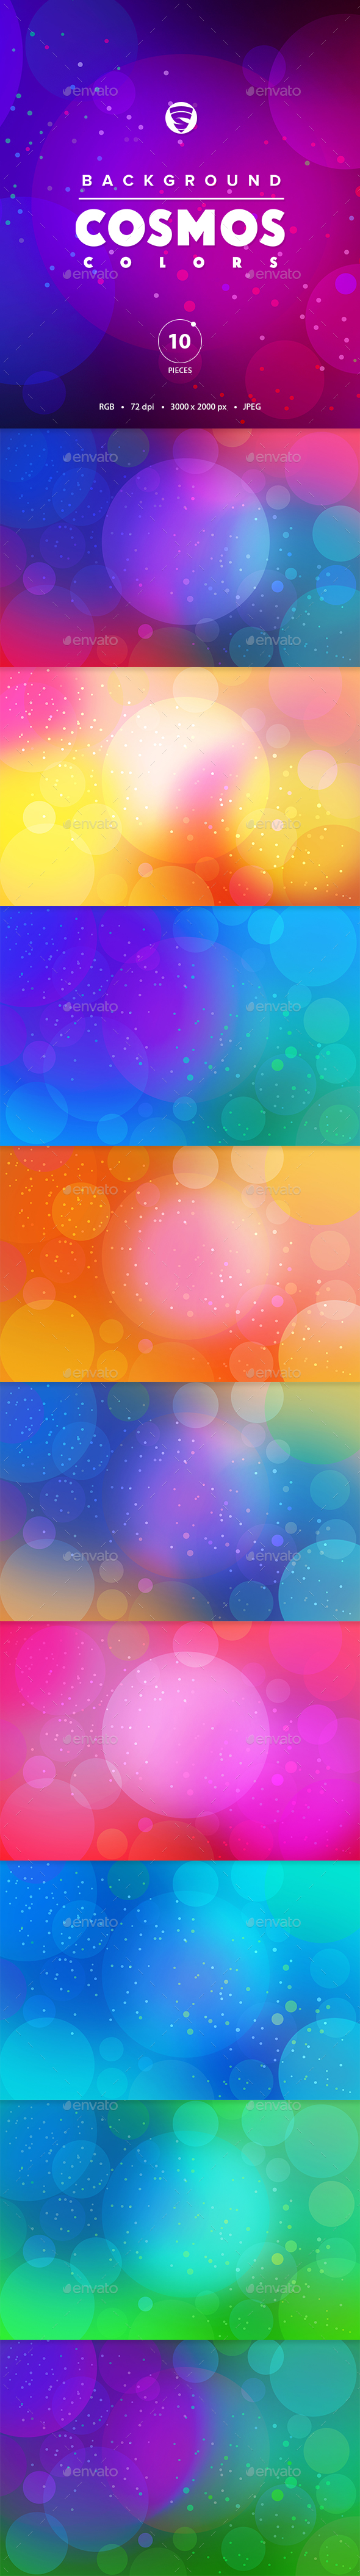 10 Backgrounds set Cosmos colors - Backgrounds Graphics